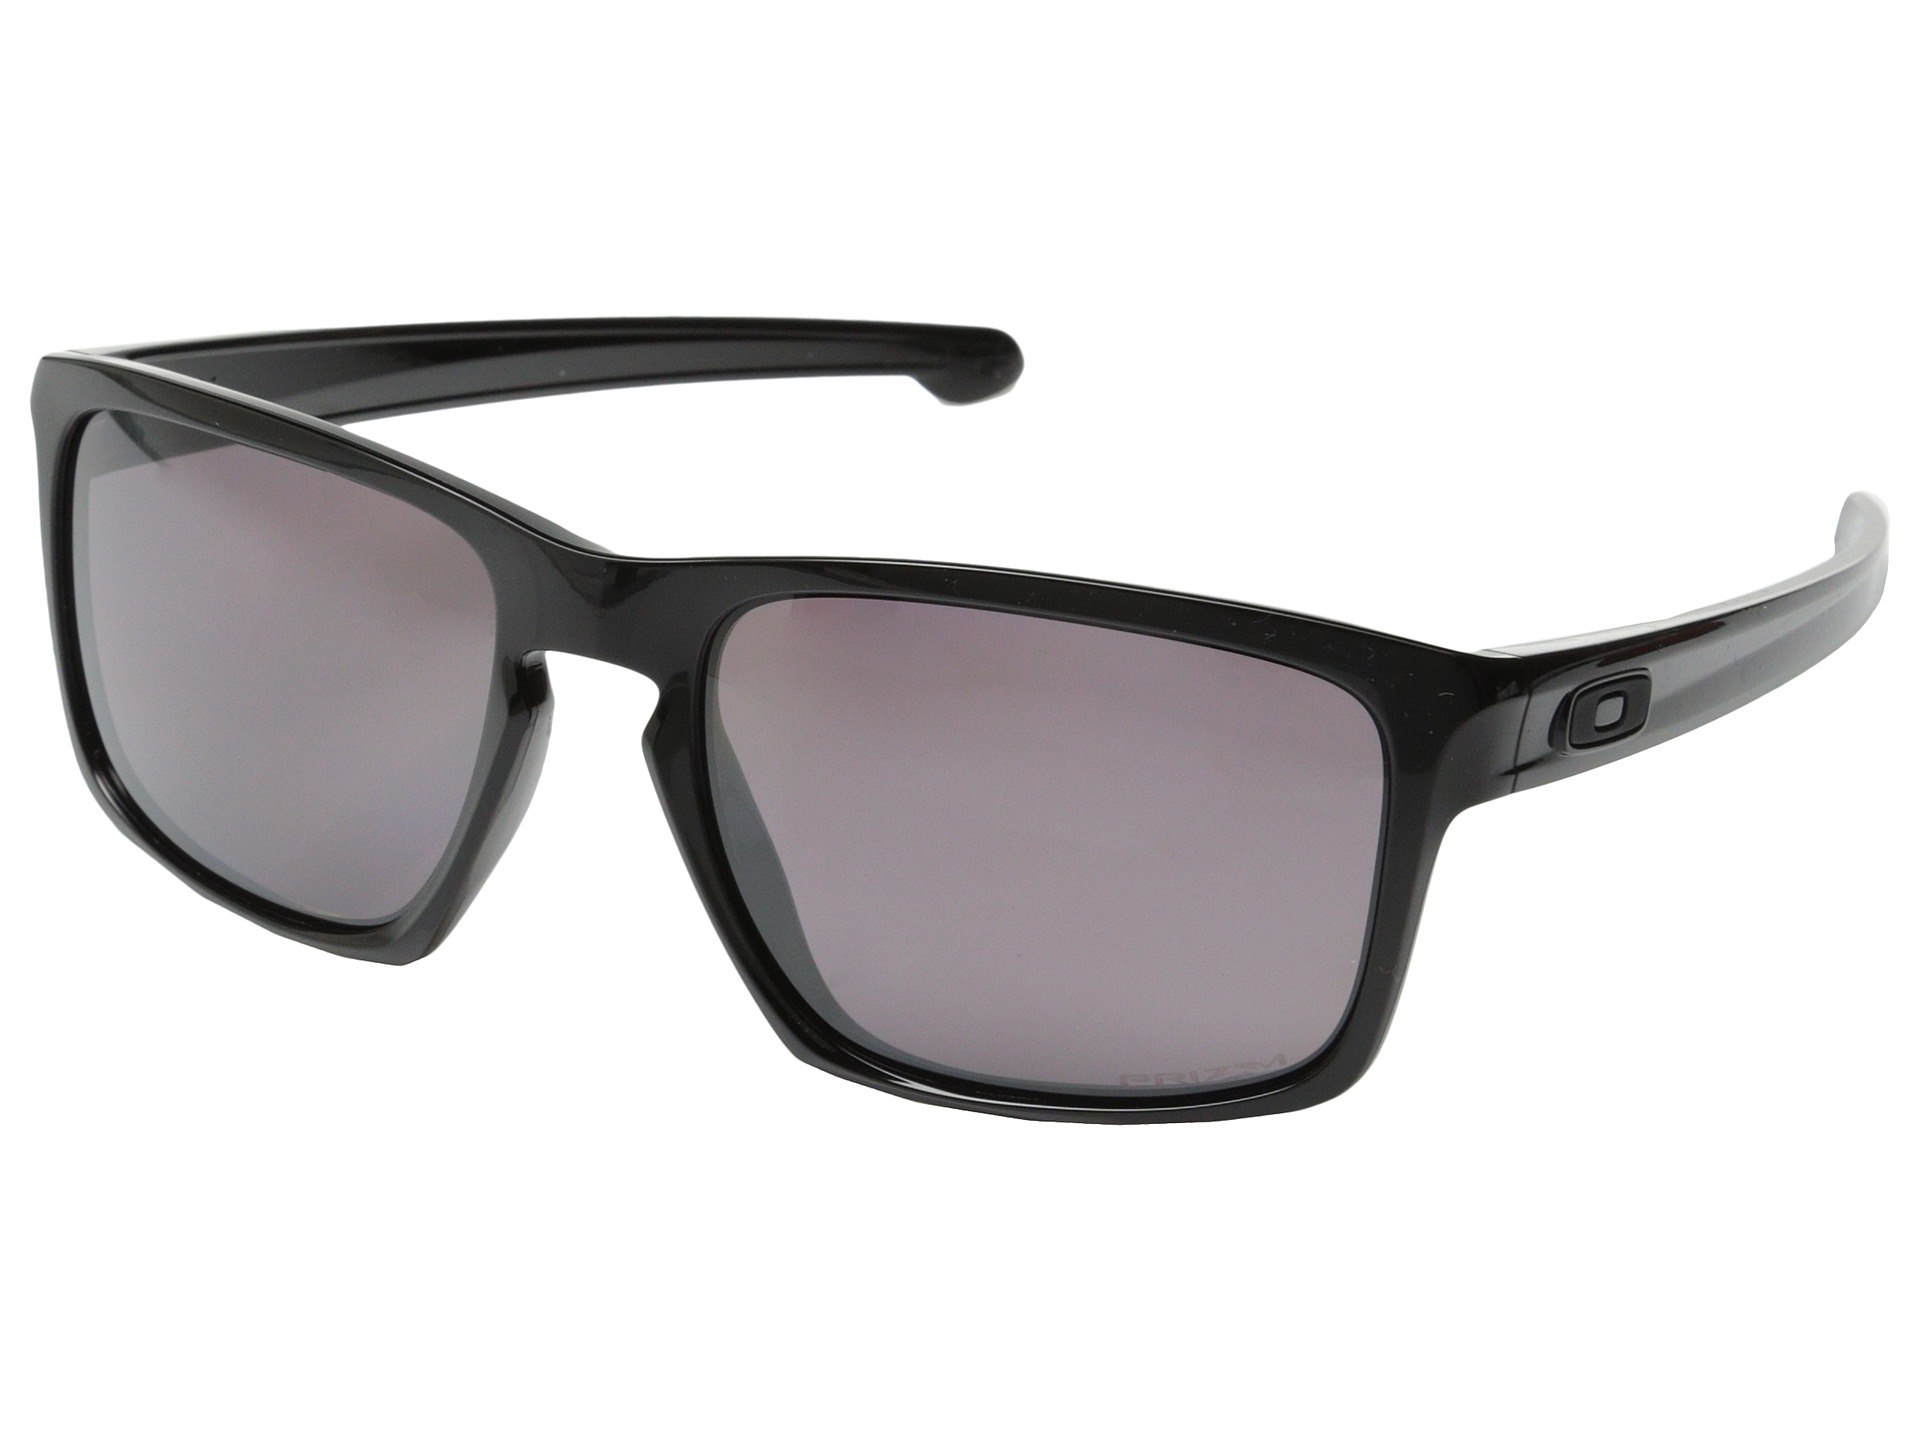 e05dee057b1 Oakley Sliver Polished Black Prizm Daily Polarized - slevi1.mit.edu Free  Shipping